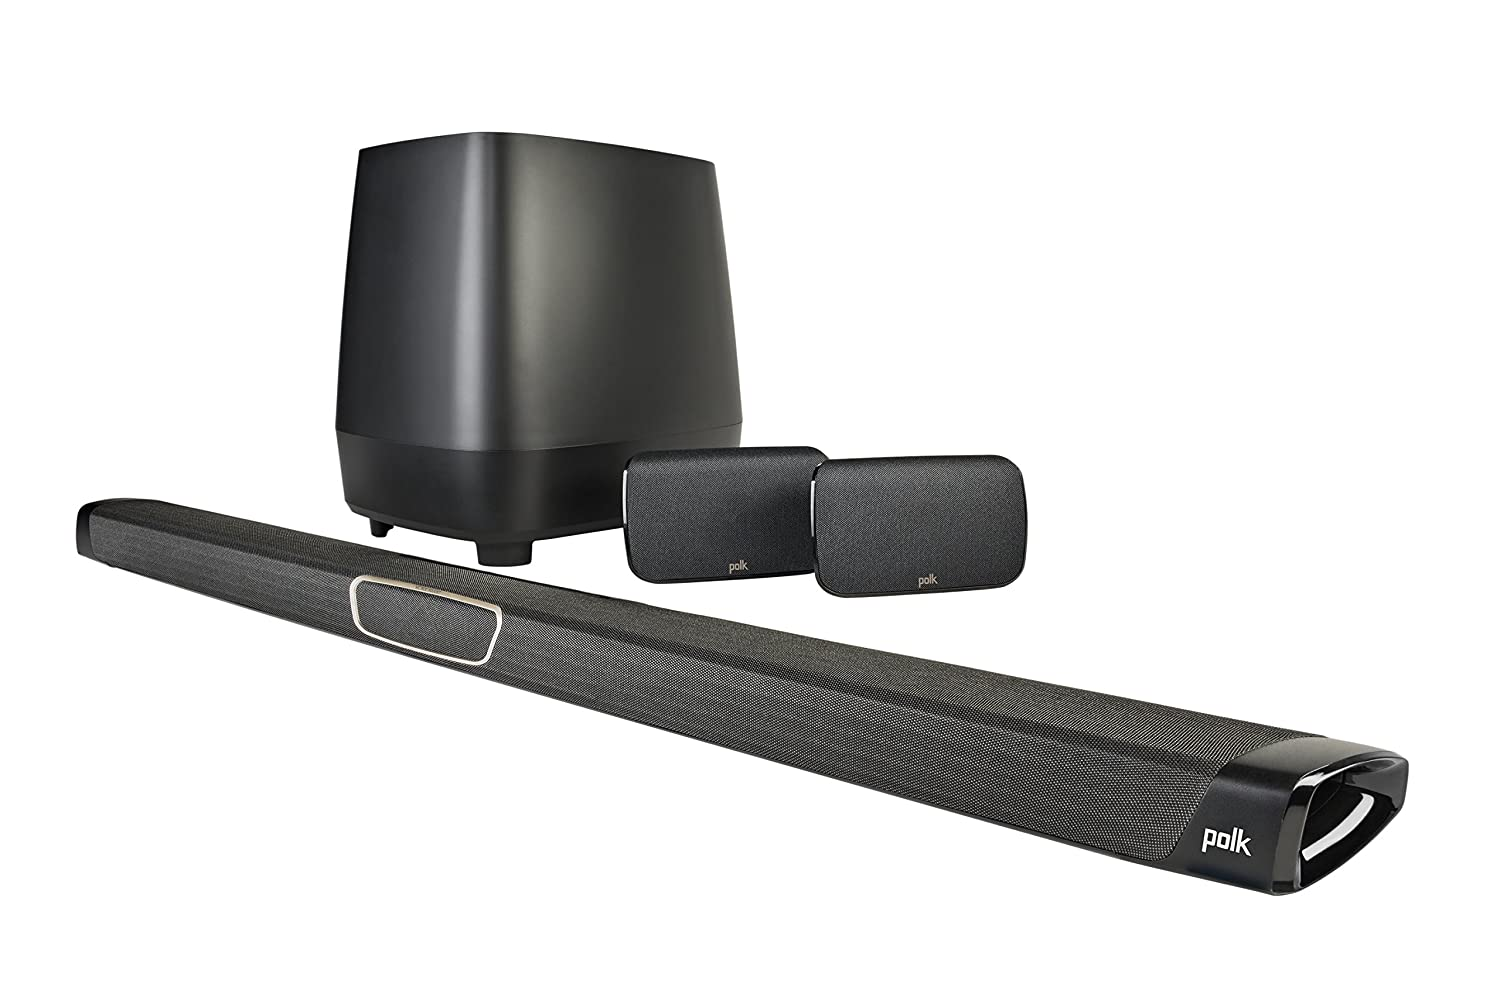 Polk Audio MagniFi Max SR Home Theater Surround Sound Bar -Maximum Performance Home Theater System, Wireless Subwoofer and Two Speakers Included